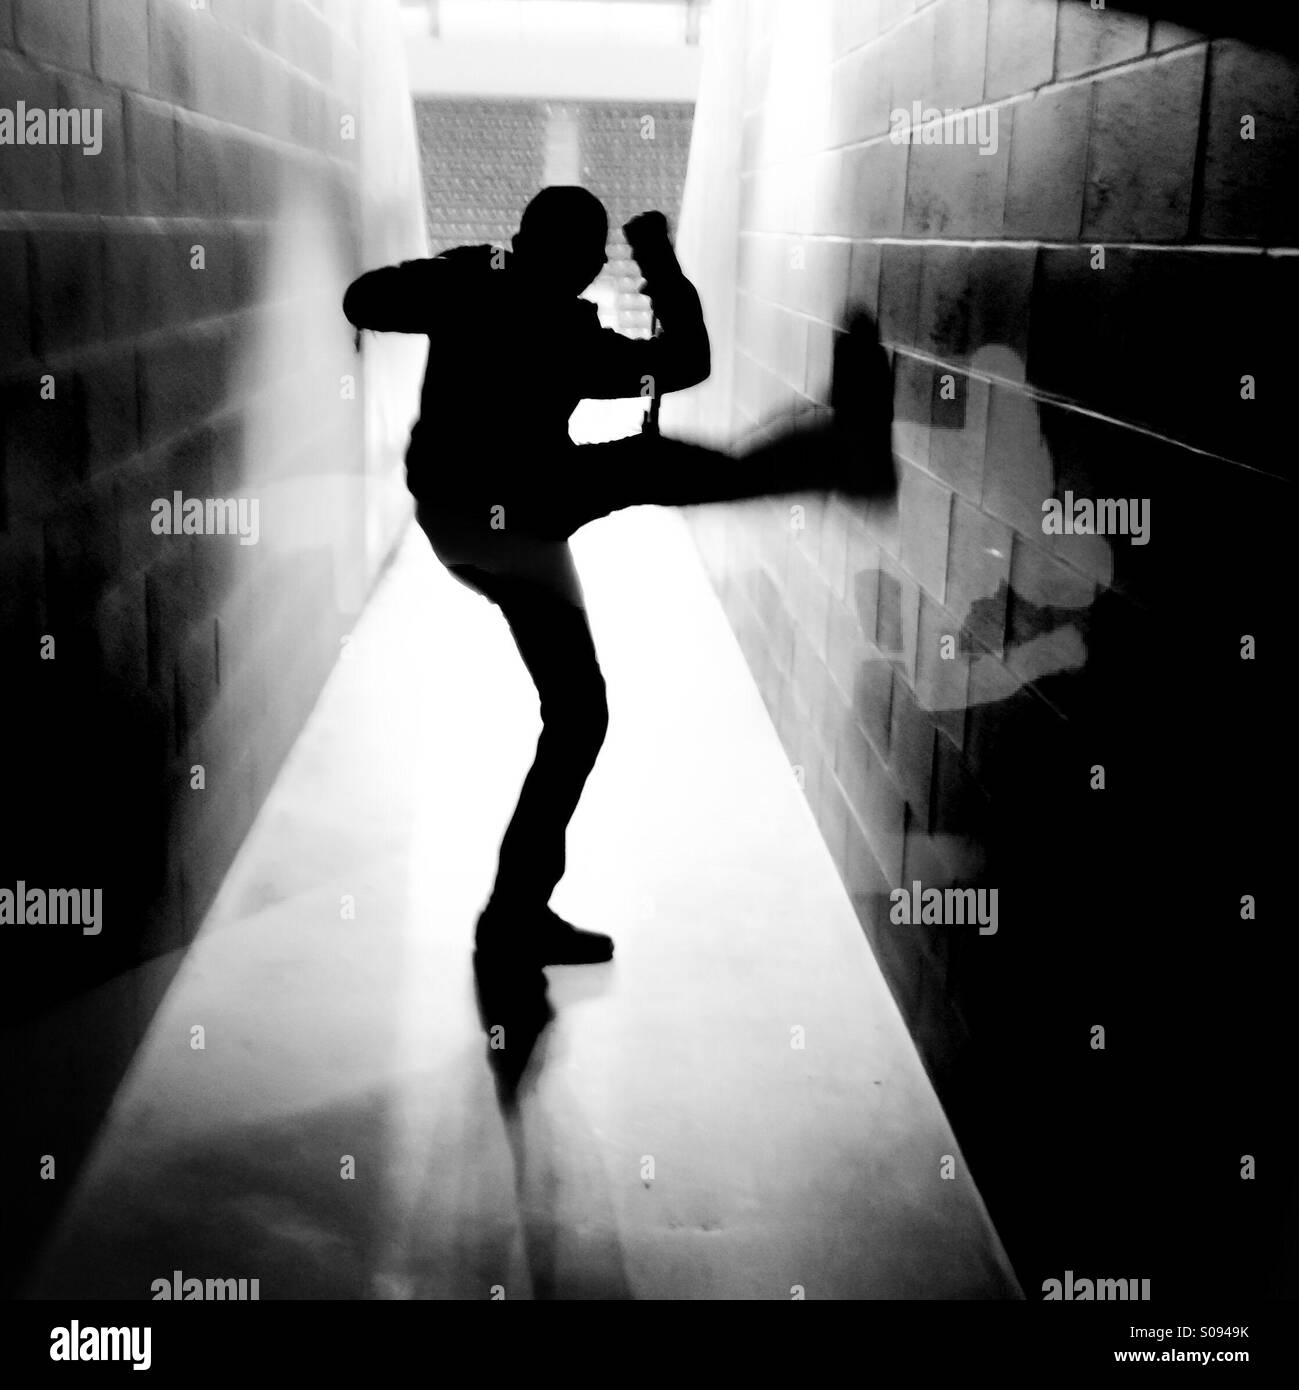 Silhouette de teen boy kicking Photo Stock